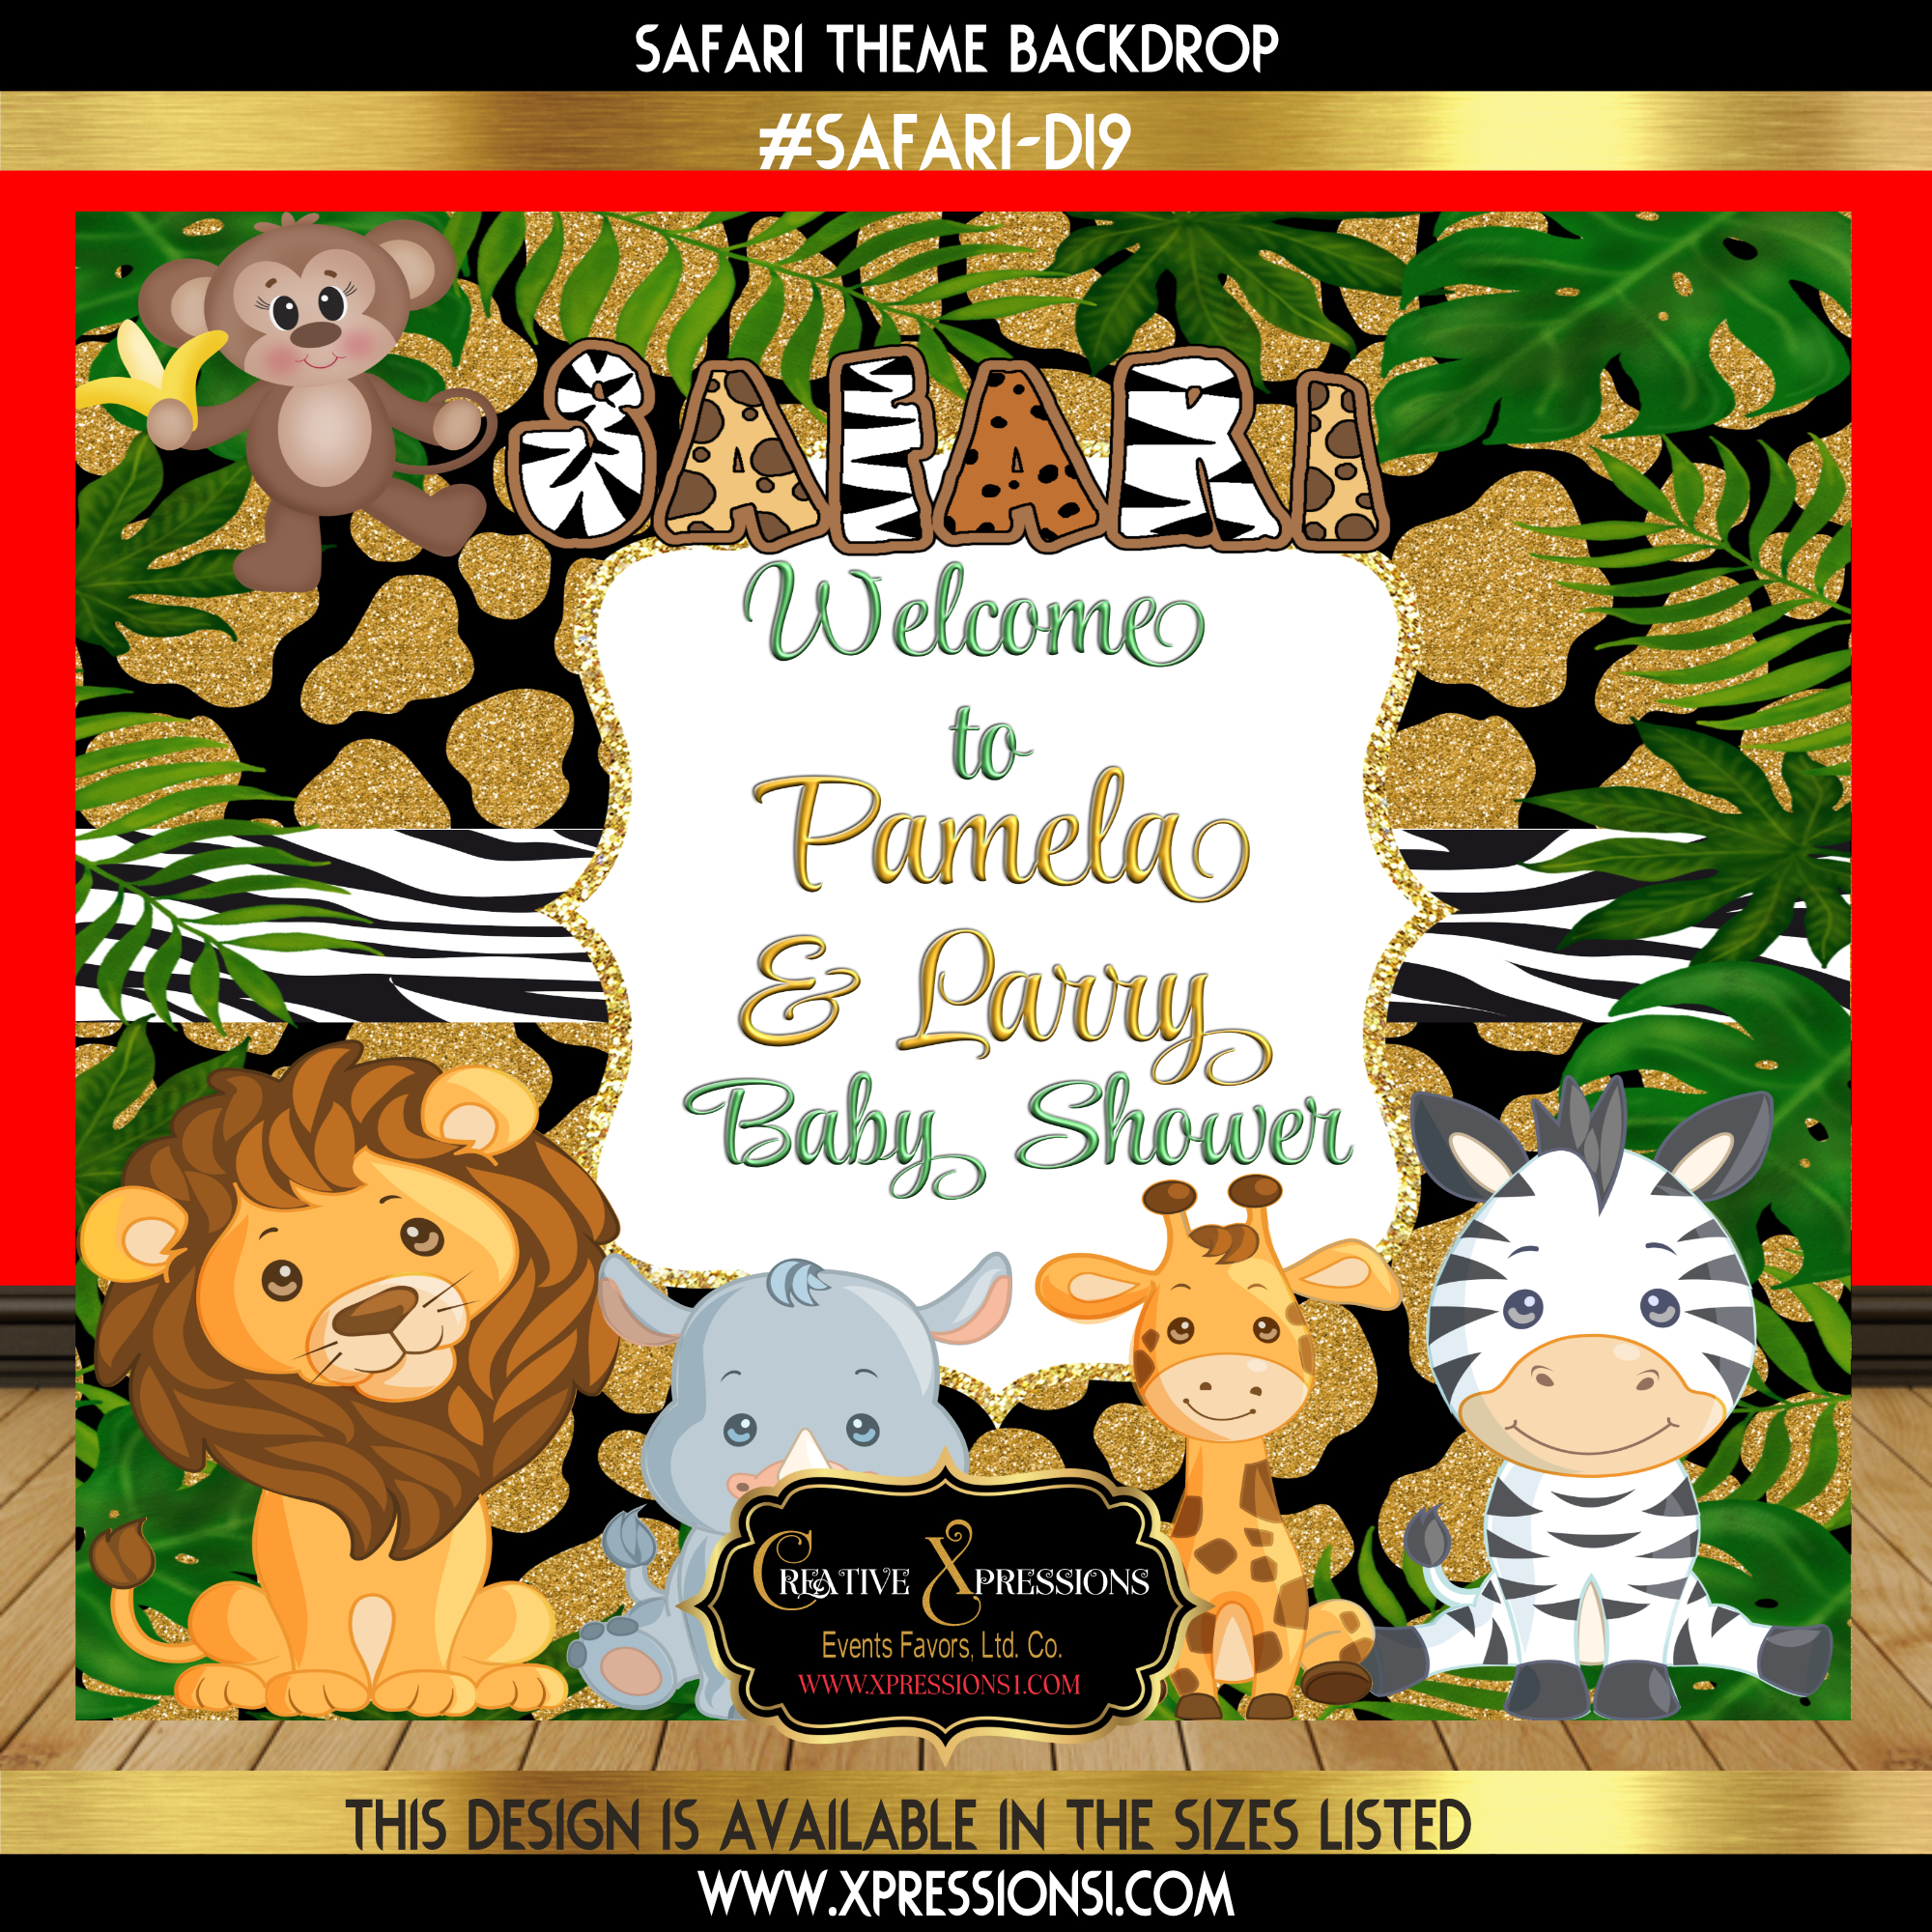 Safari Hunt Baby Shower Backdrop